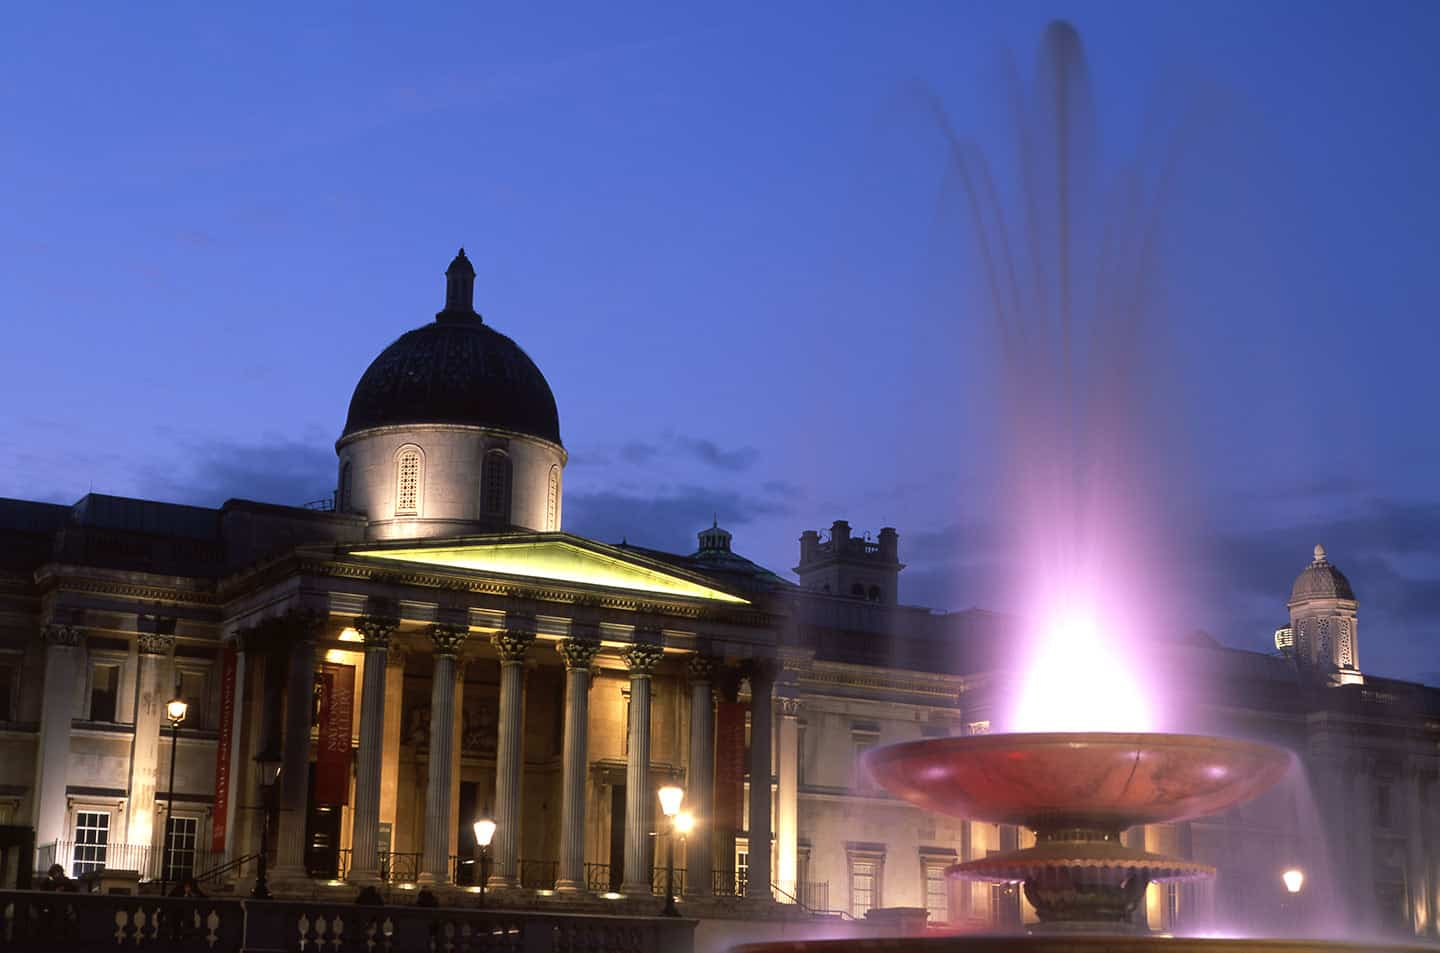 Image of Trafalgar Square one of the most popular London sites for visitors